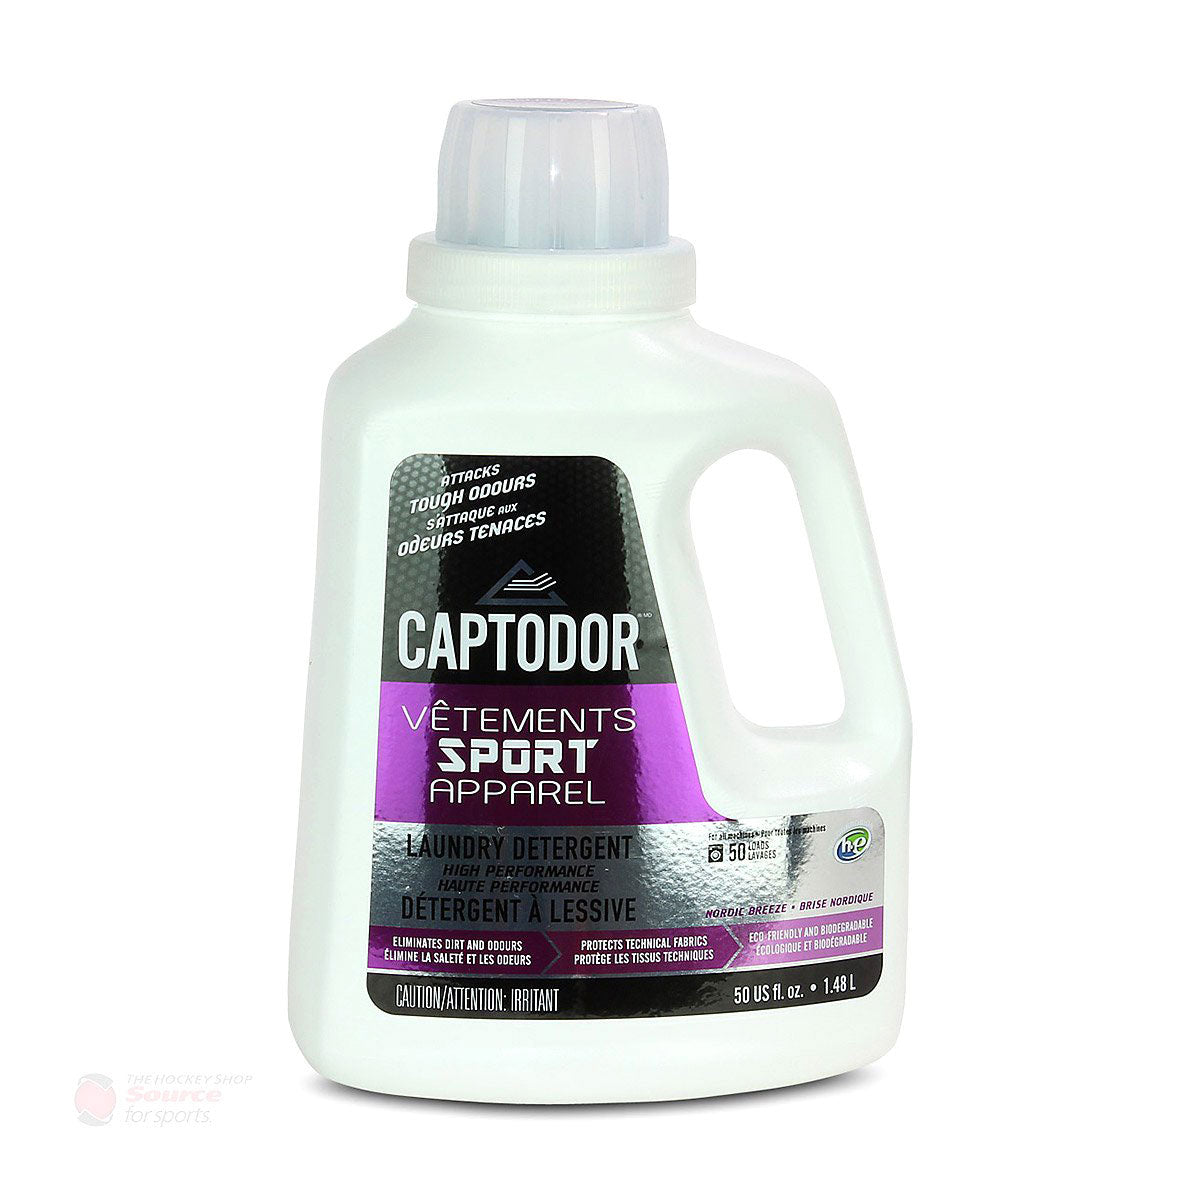 Captodor Laundry Detergent - 900ml